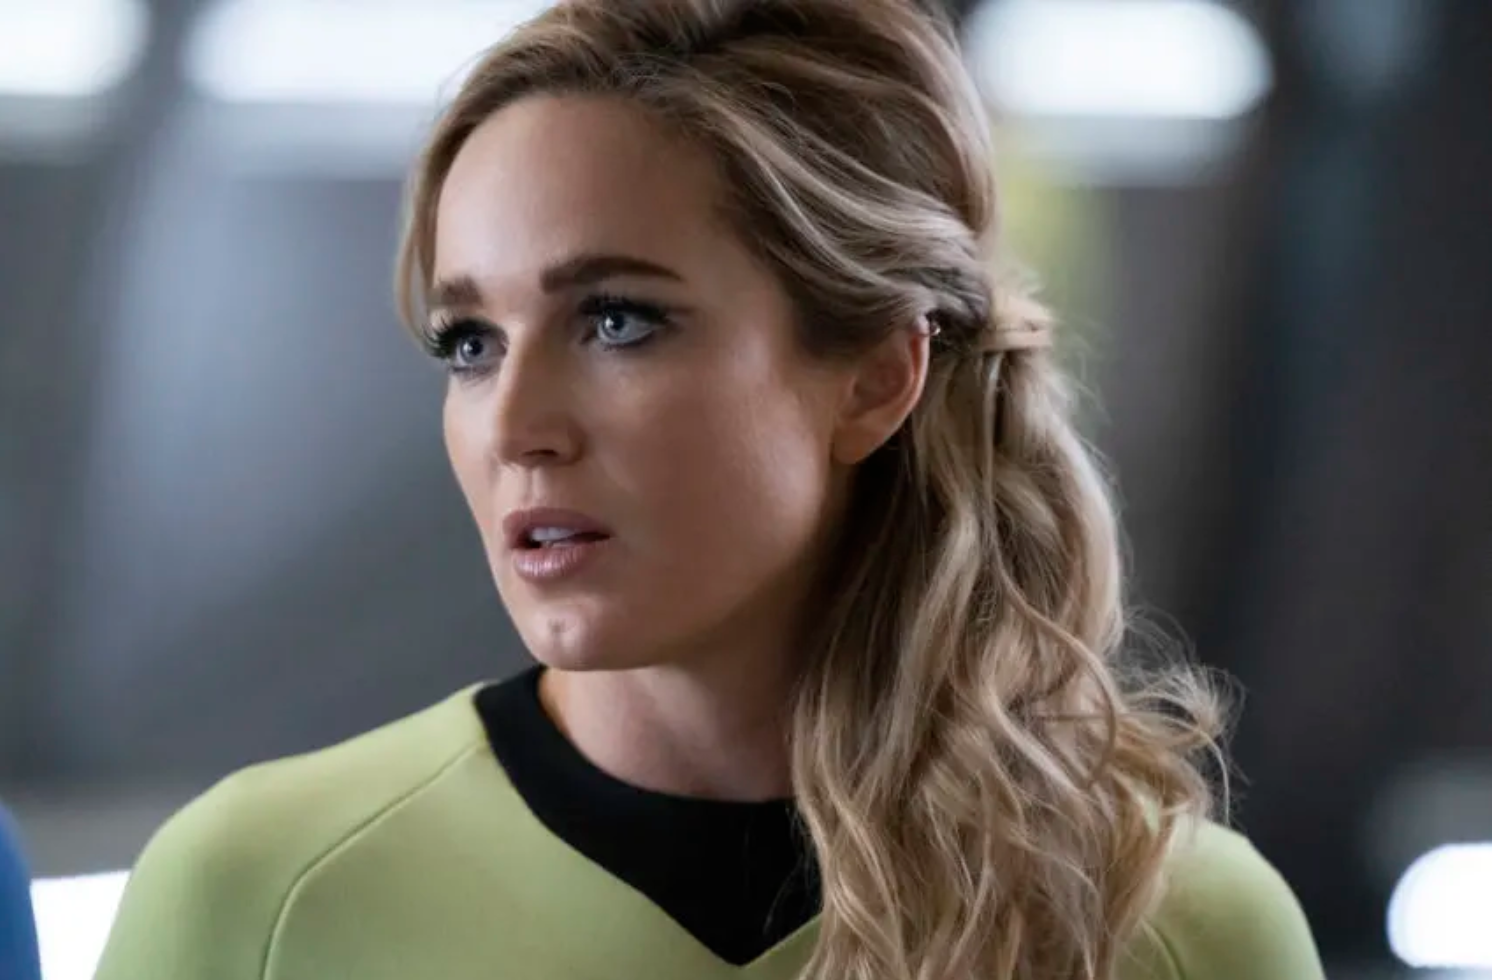 Queerly Not Straight: Caity Lotz and Not Supporting Transphobes